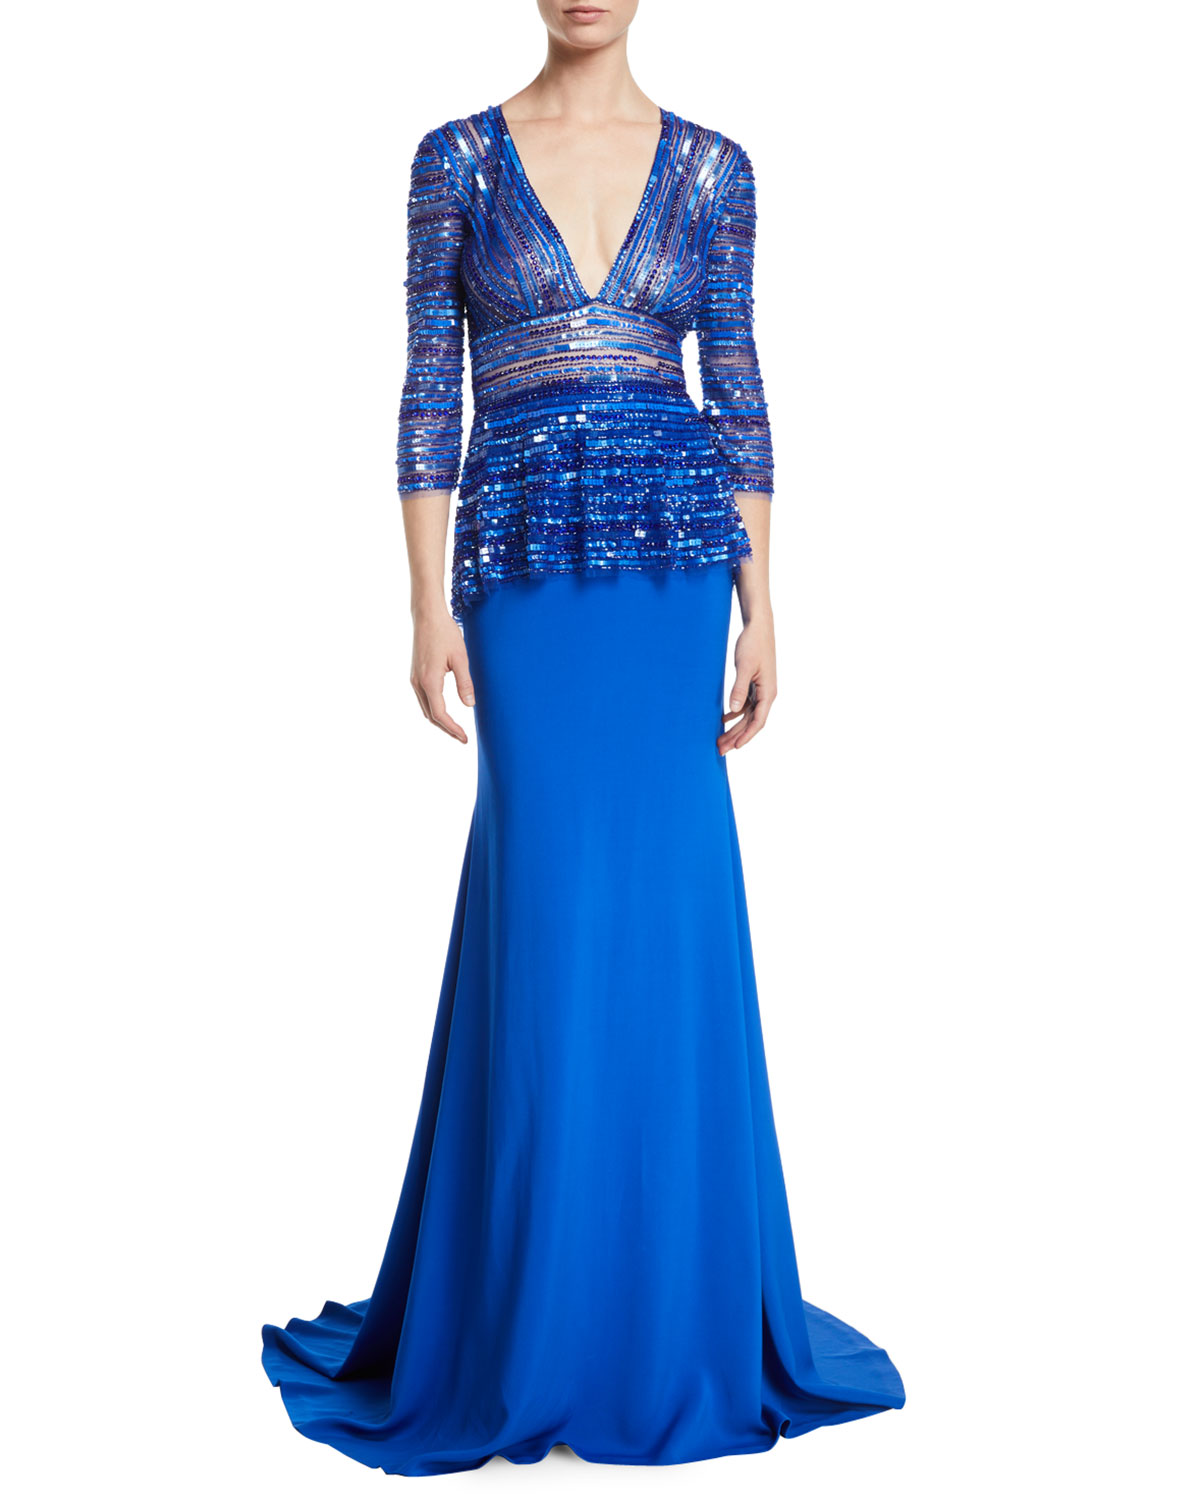 NAEEM KHAN Plunging-V 3/4-Sleeve Beaded-Top Trumpet Evening Gown in Cobalt